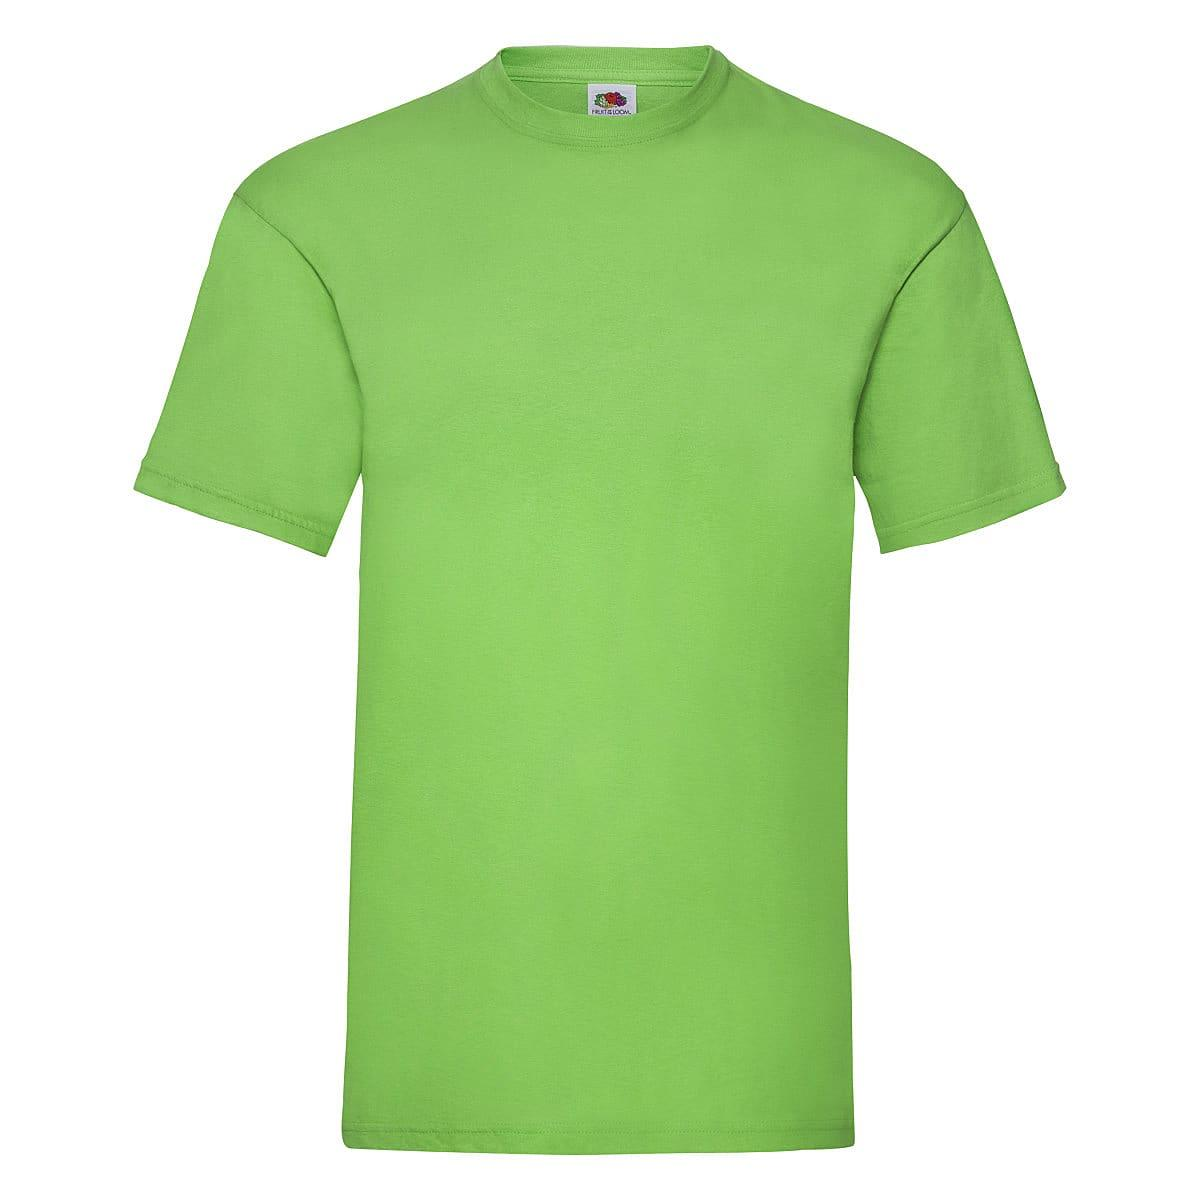 Fruit Of The Loom Valueweight T-Shirt in Lime (Product Code: 61036)